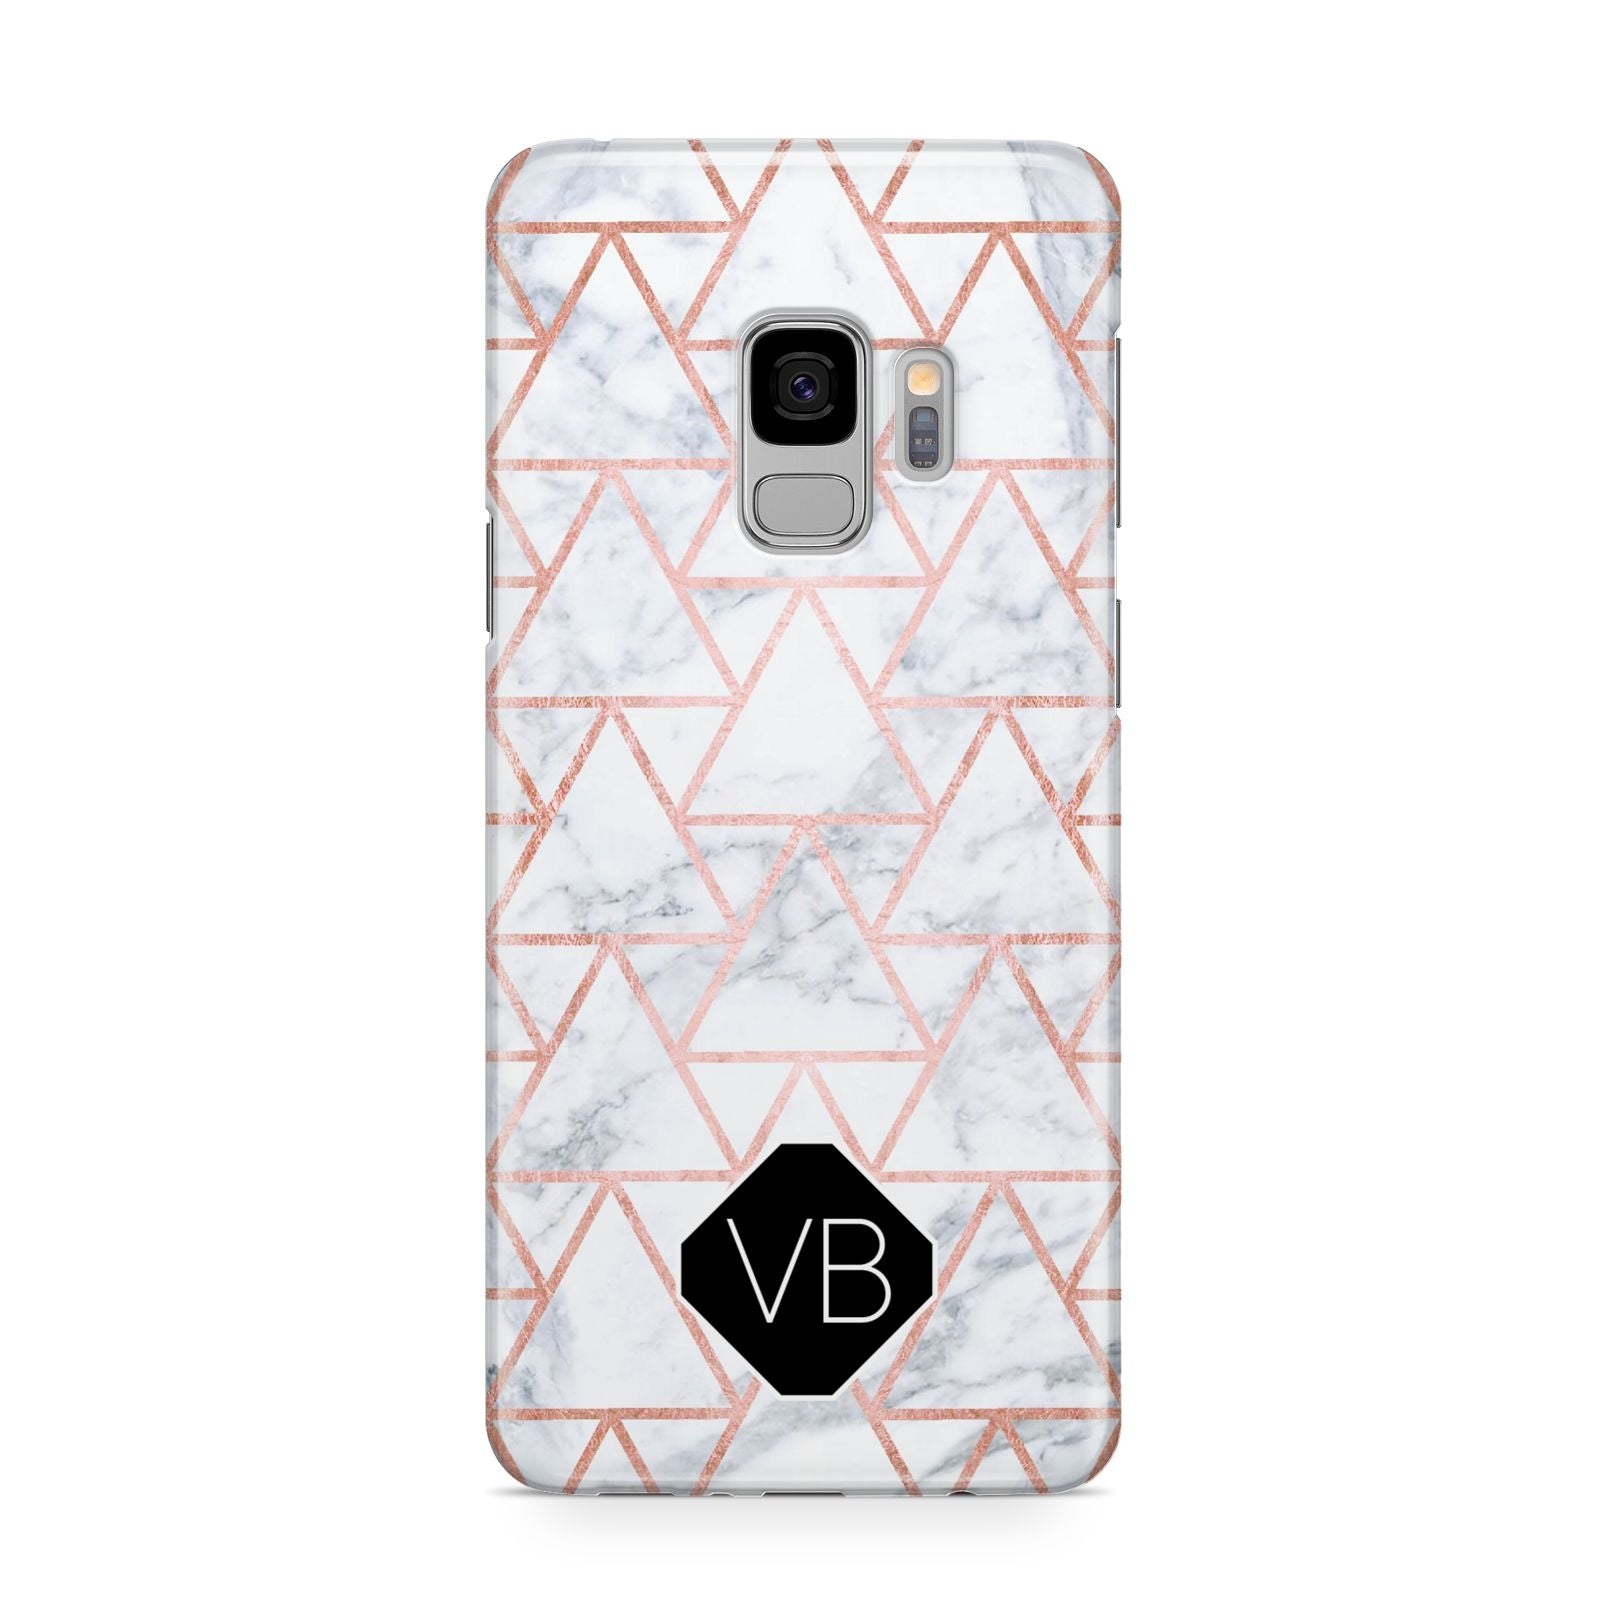 Personalised Rose Gold Grey Marble Hexagon Samsung Galaxy S9 Case